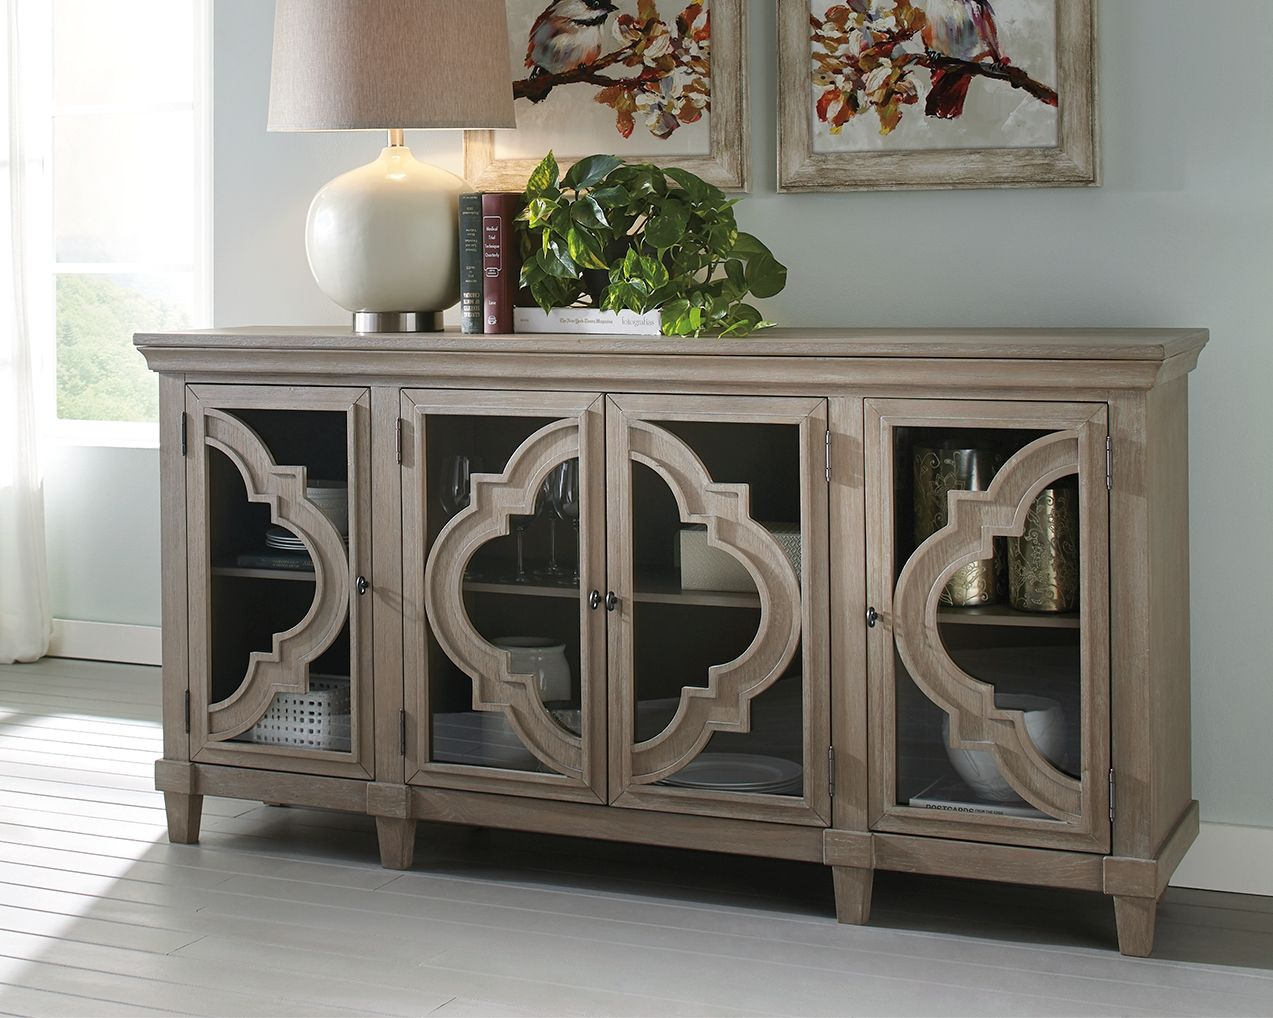 Fossil Ridge Accent Cabinet, Gray | Products In 2019 Inside Serafino Media Credenzas (View 12 of 30)